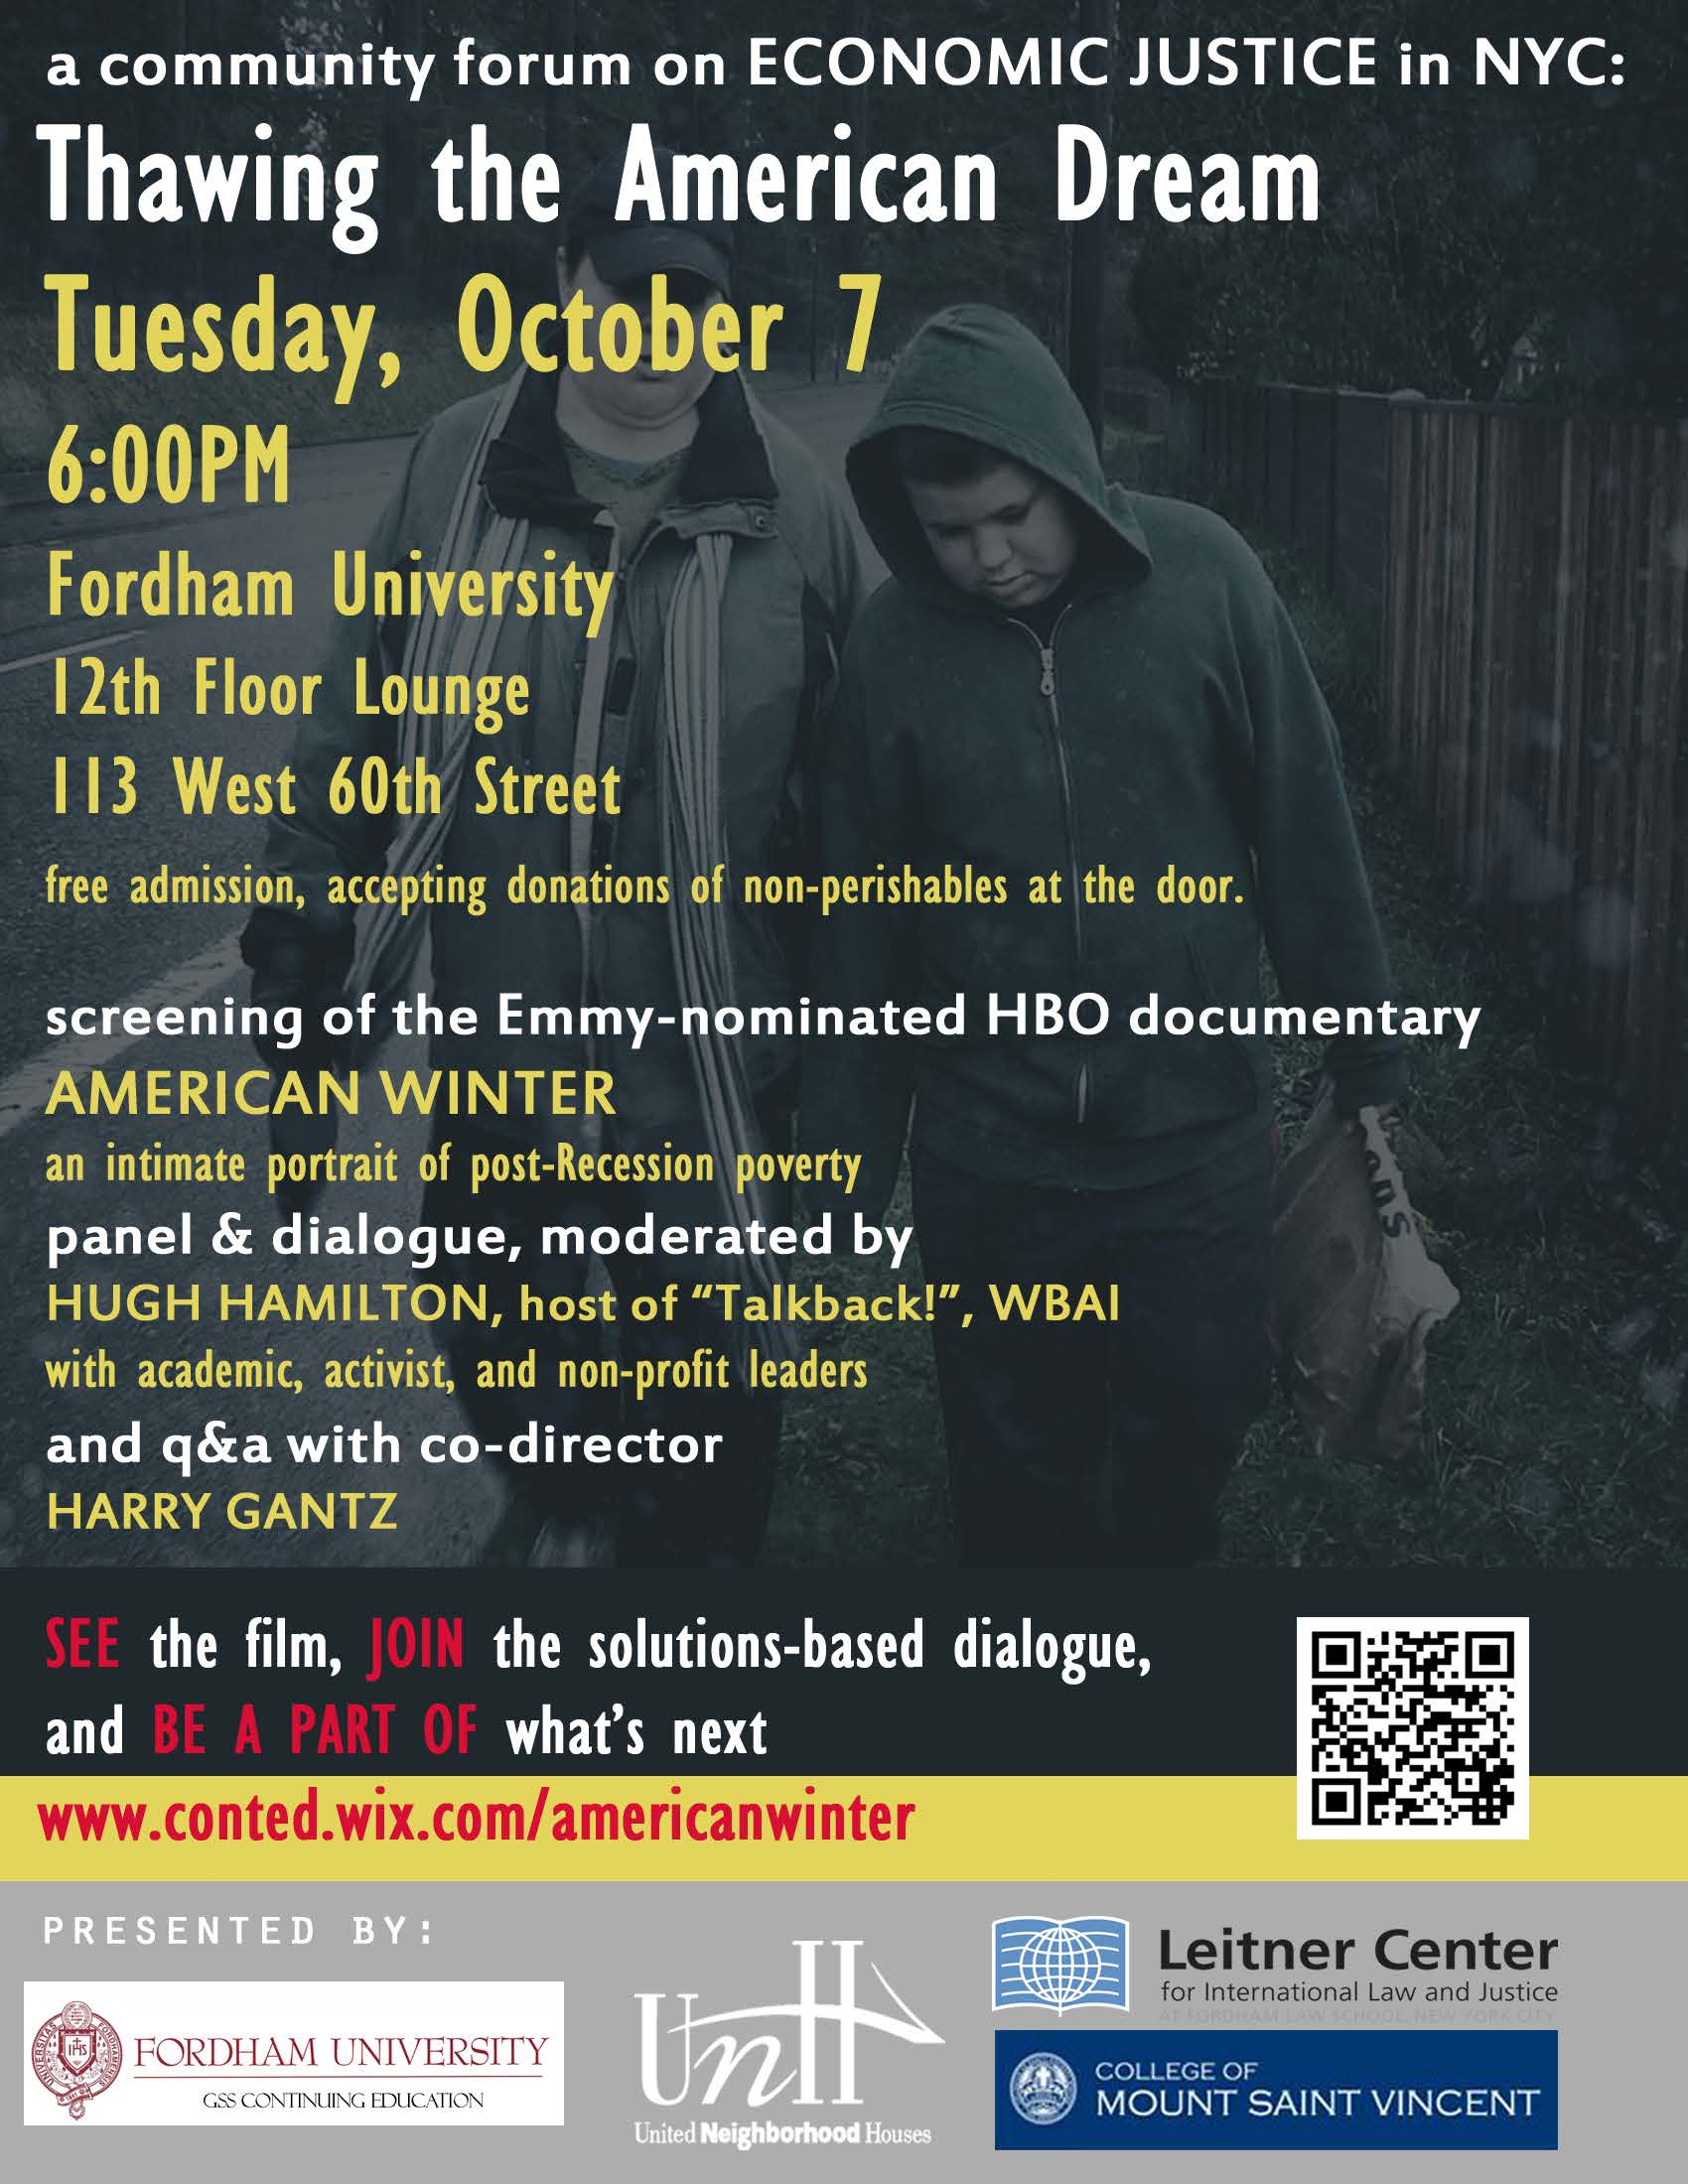 Film Screening and Community Forum on Economic Justice: Thawing the American Dream